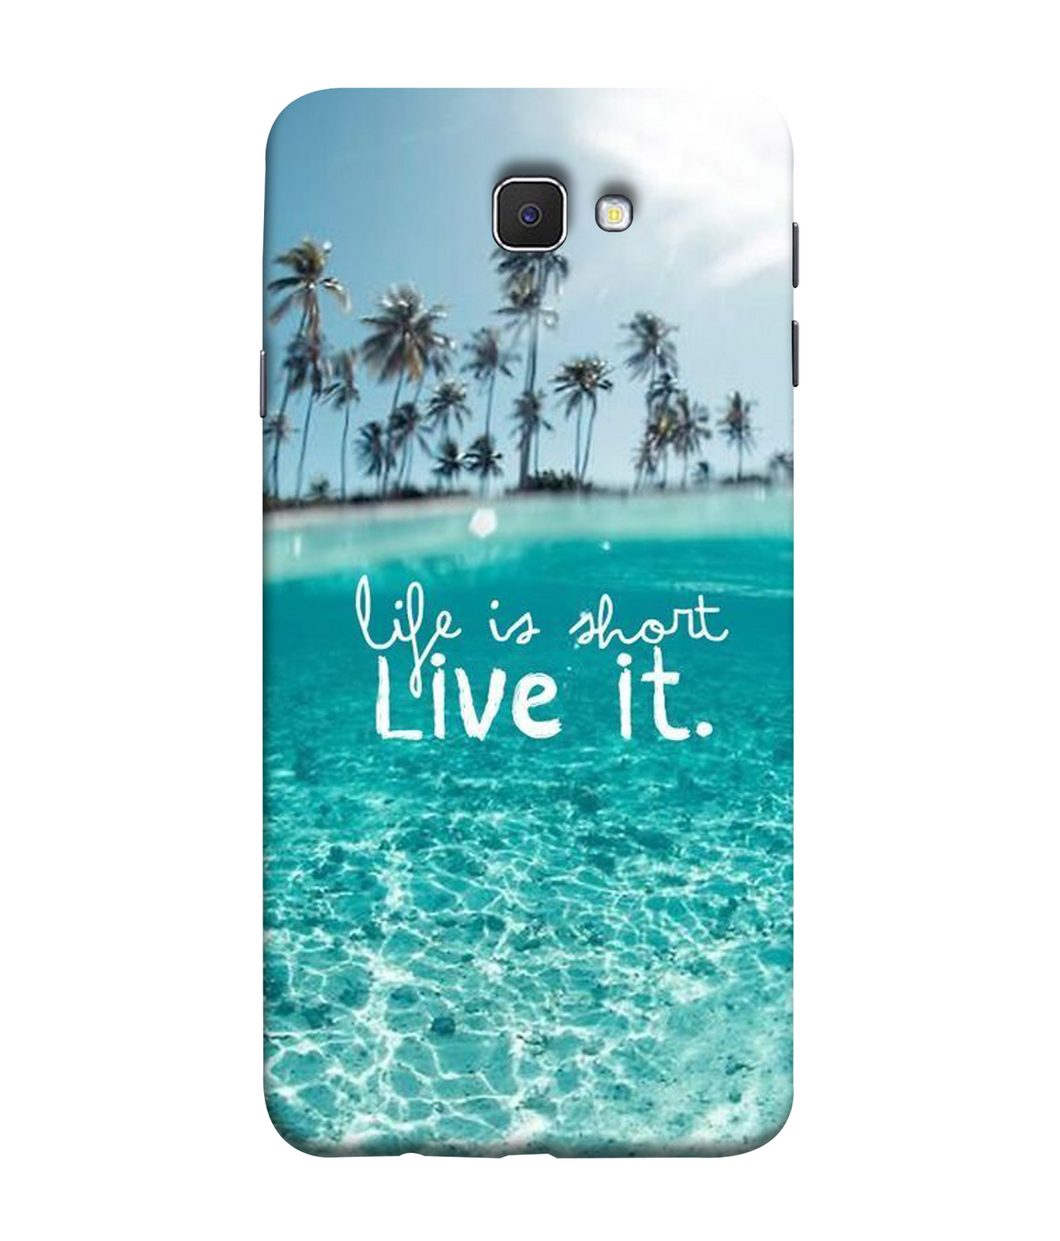 Samsung Galaxy J7 Prime Live Life Mobile cover